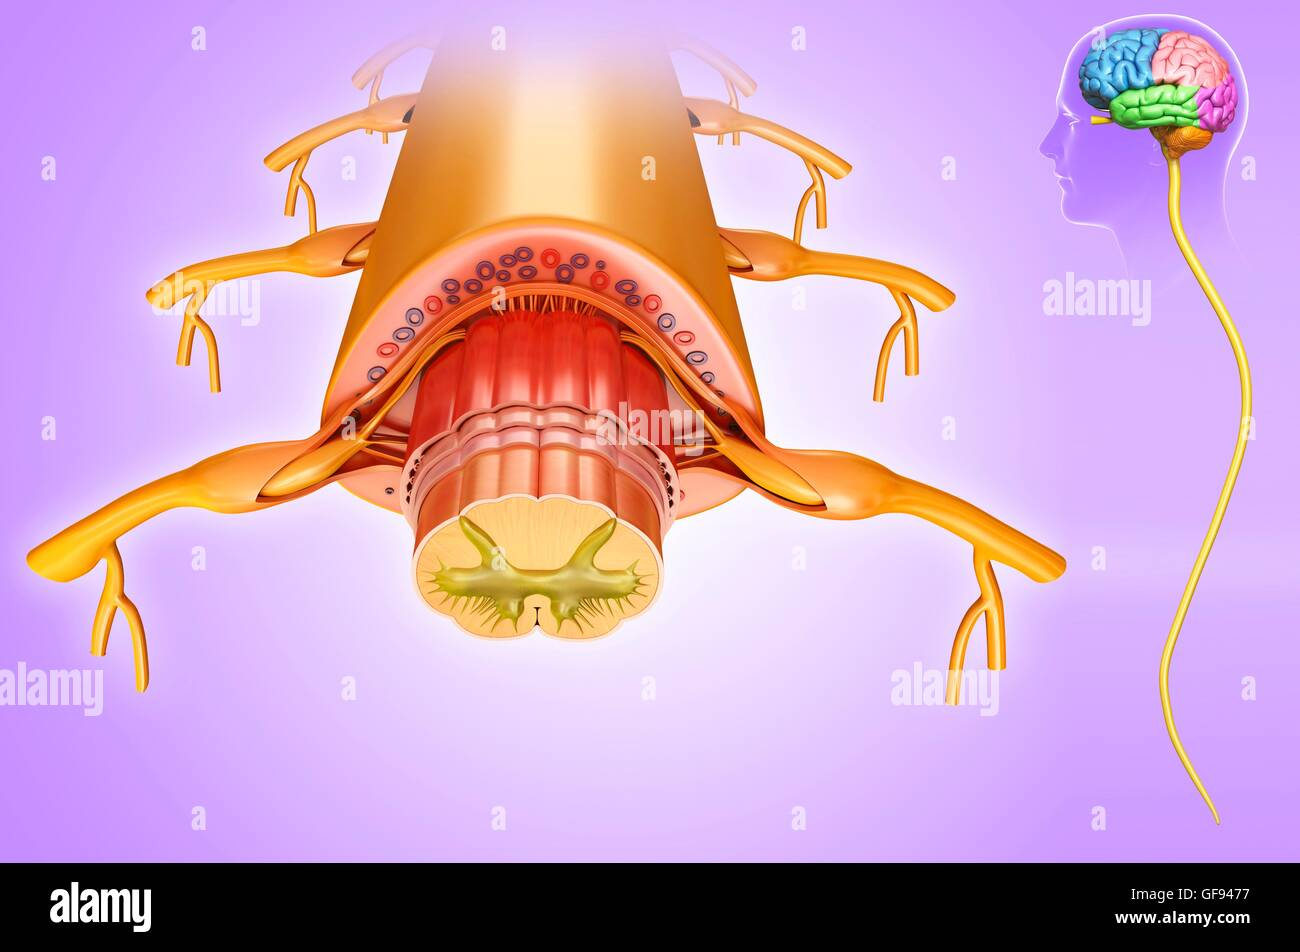 Illustration of spinal cord anatomy cross-section Stock Photo ...